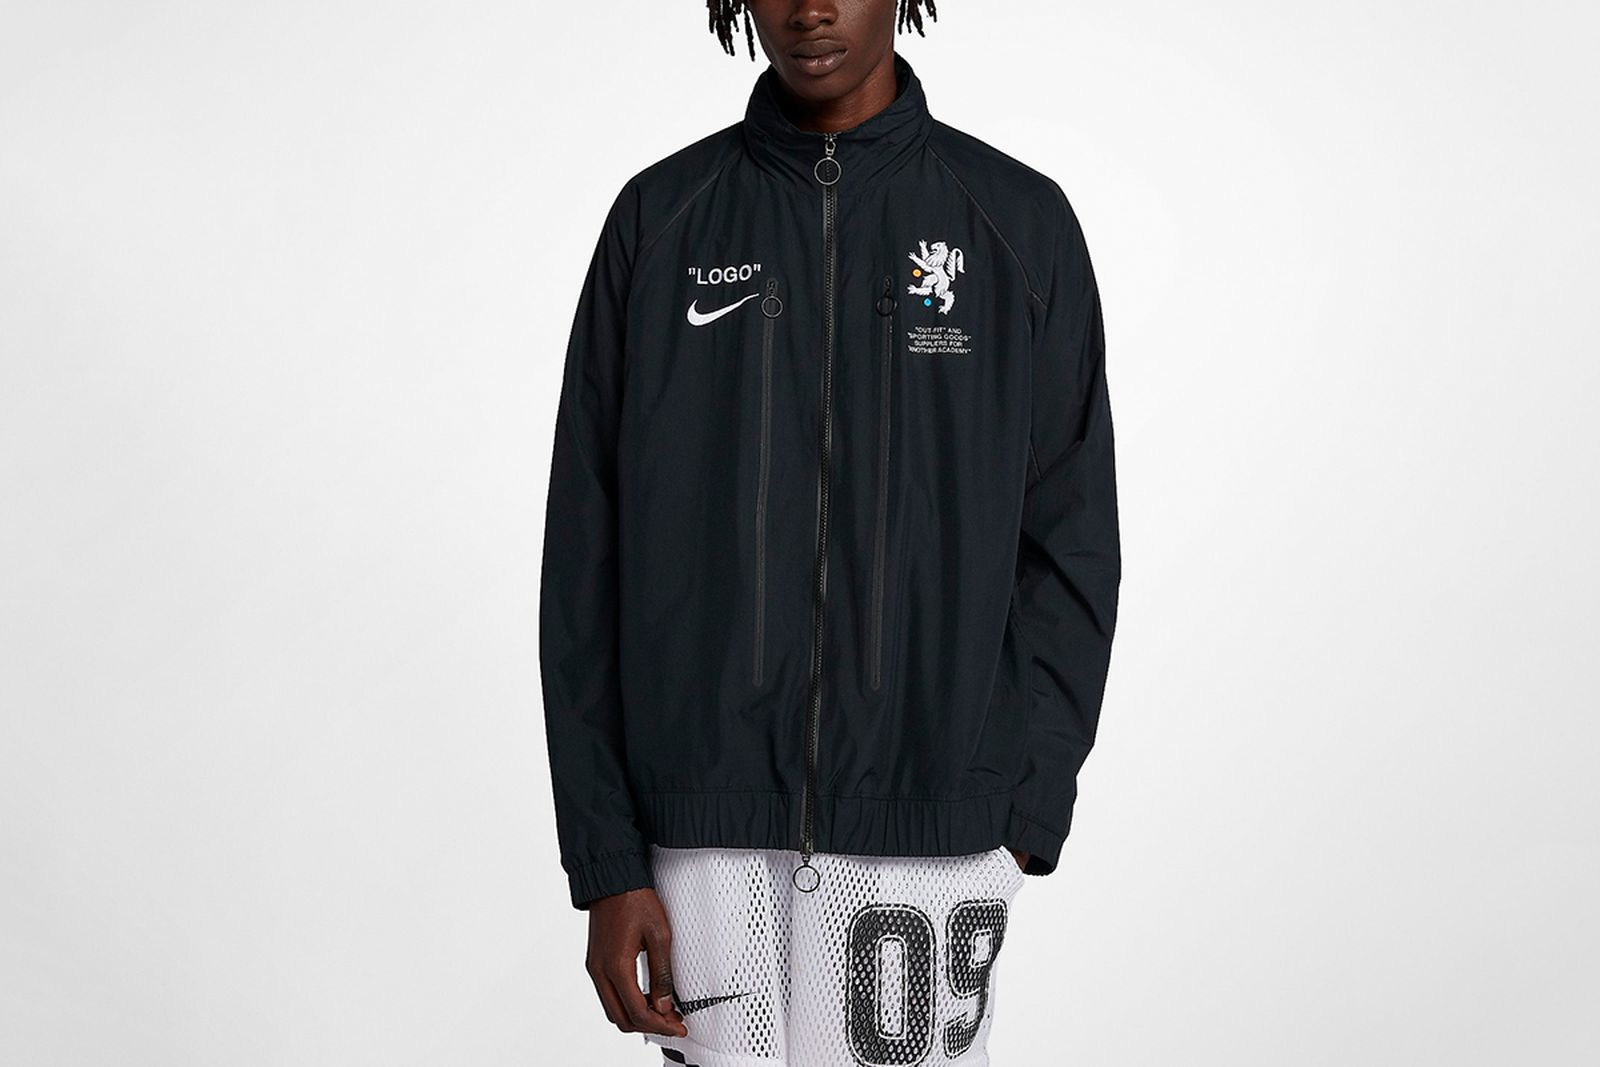 track jacket 2018 FIFA World Cup Nike OFF-WHITE c/o Virgil Abloh